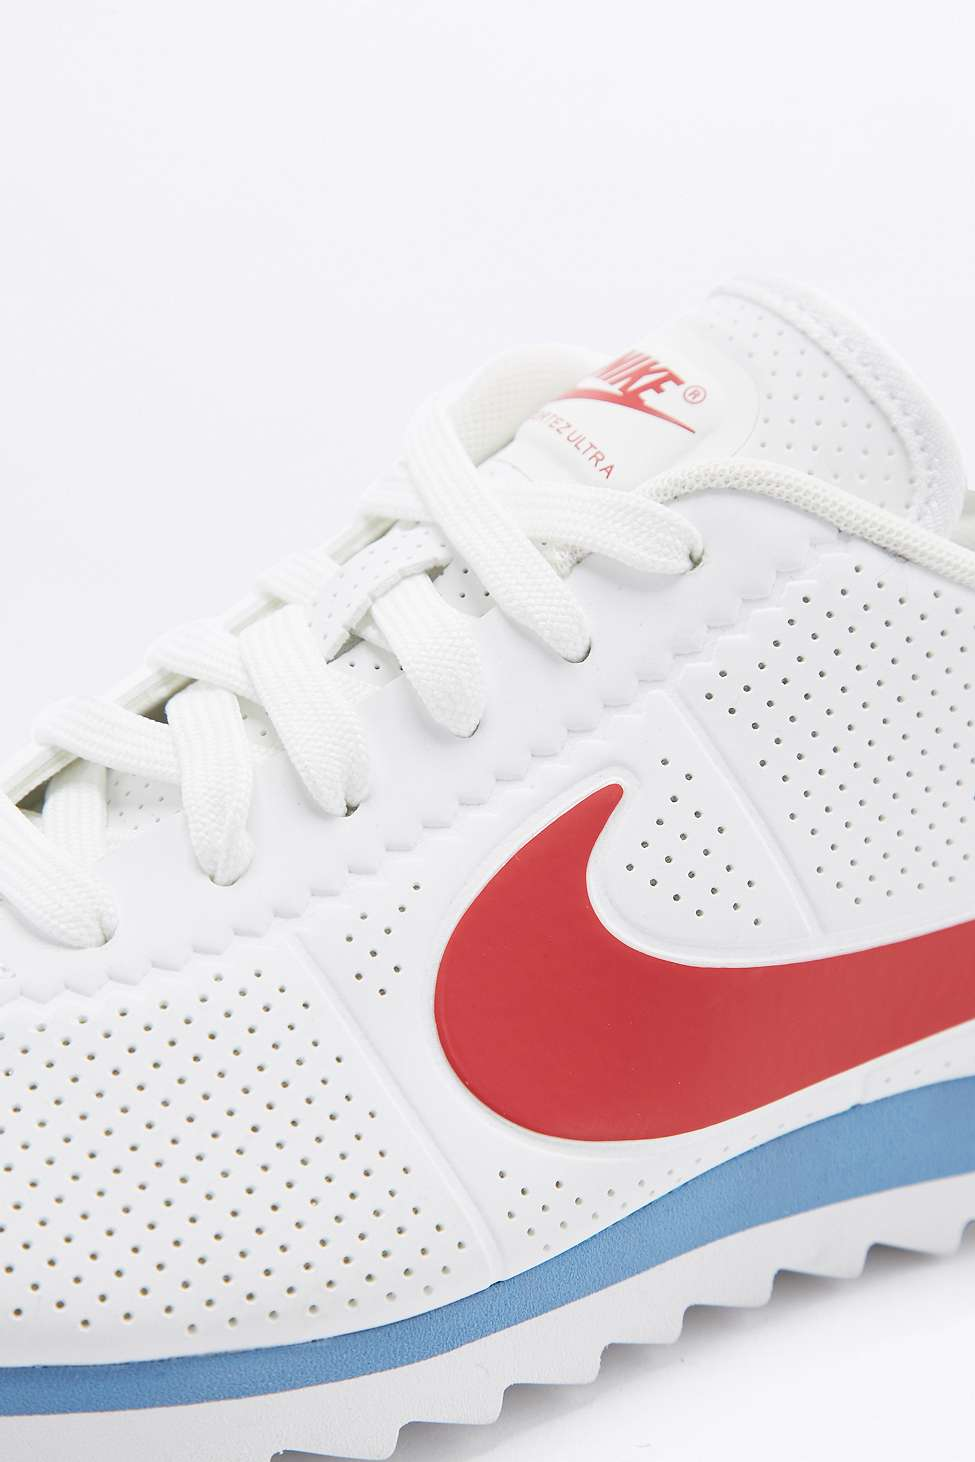 hot sales 0547b 268e6 ... Nike Cortez Ultra Moire Red White and Blue Trainers 4 ...